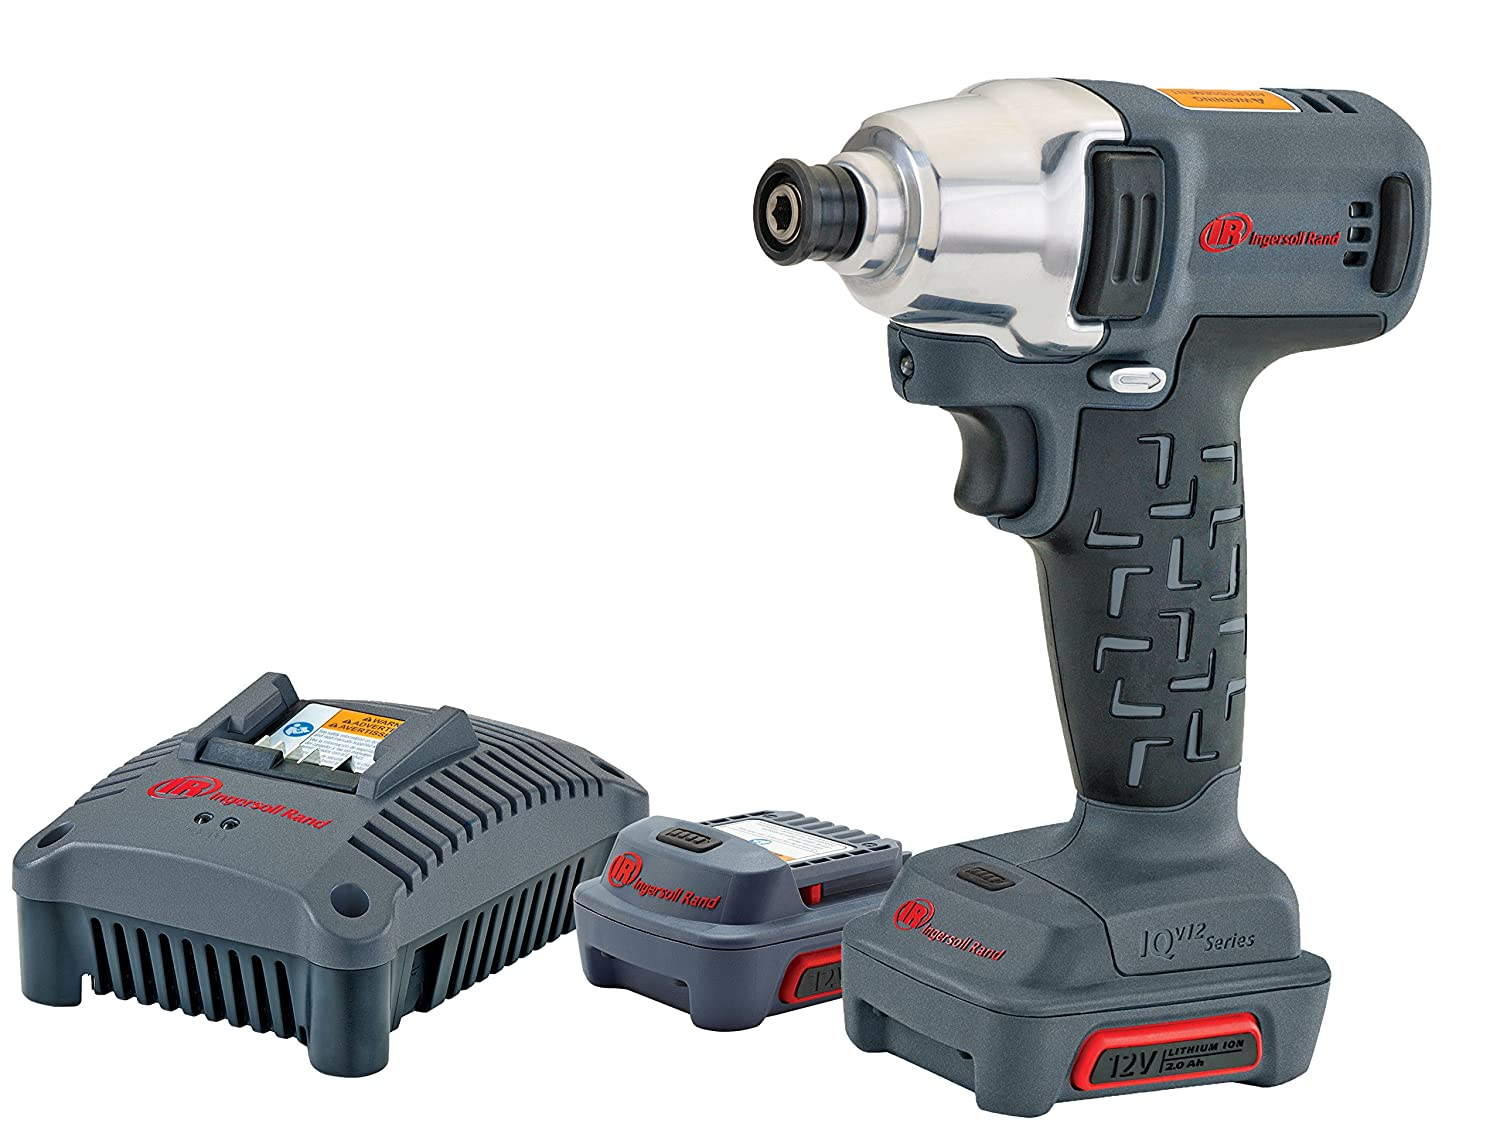 Ingersoll Rand W1110-K2 1 4 12V Hex Quick-Change Impact Wrench Kit